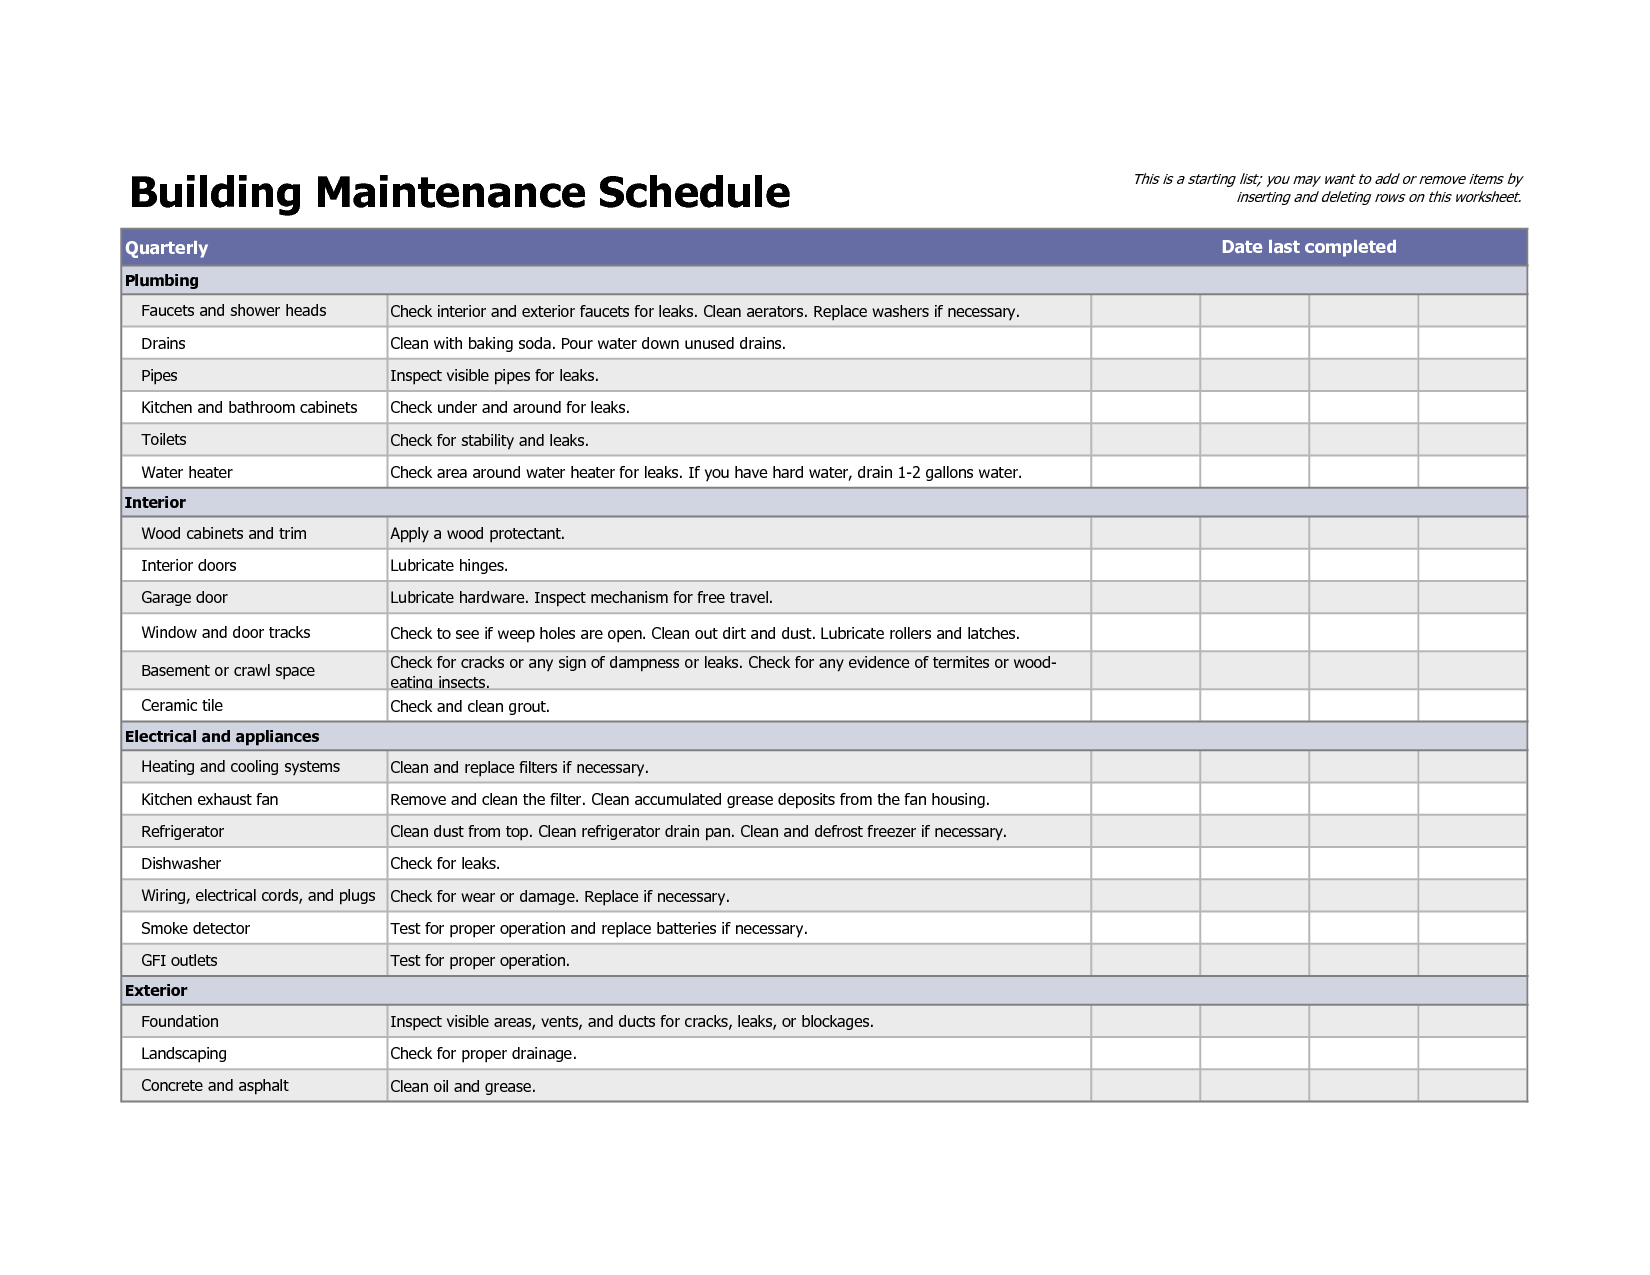 Building maintenance schedule excel template maintenence for Facility security plan template